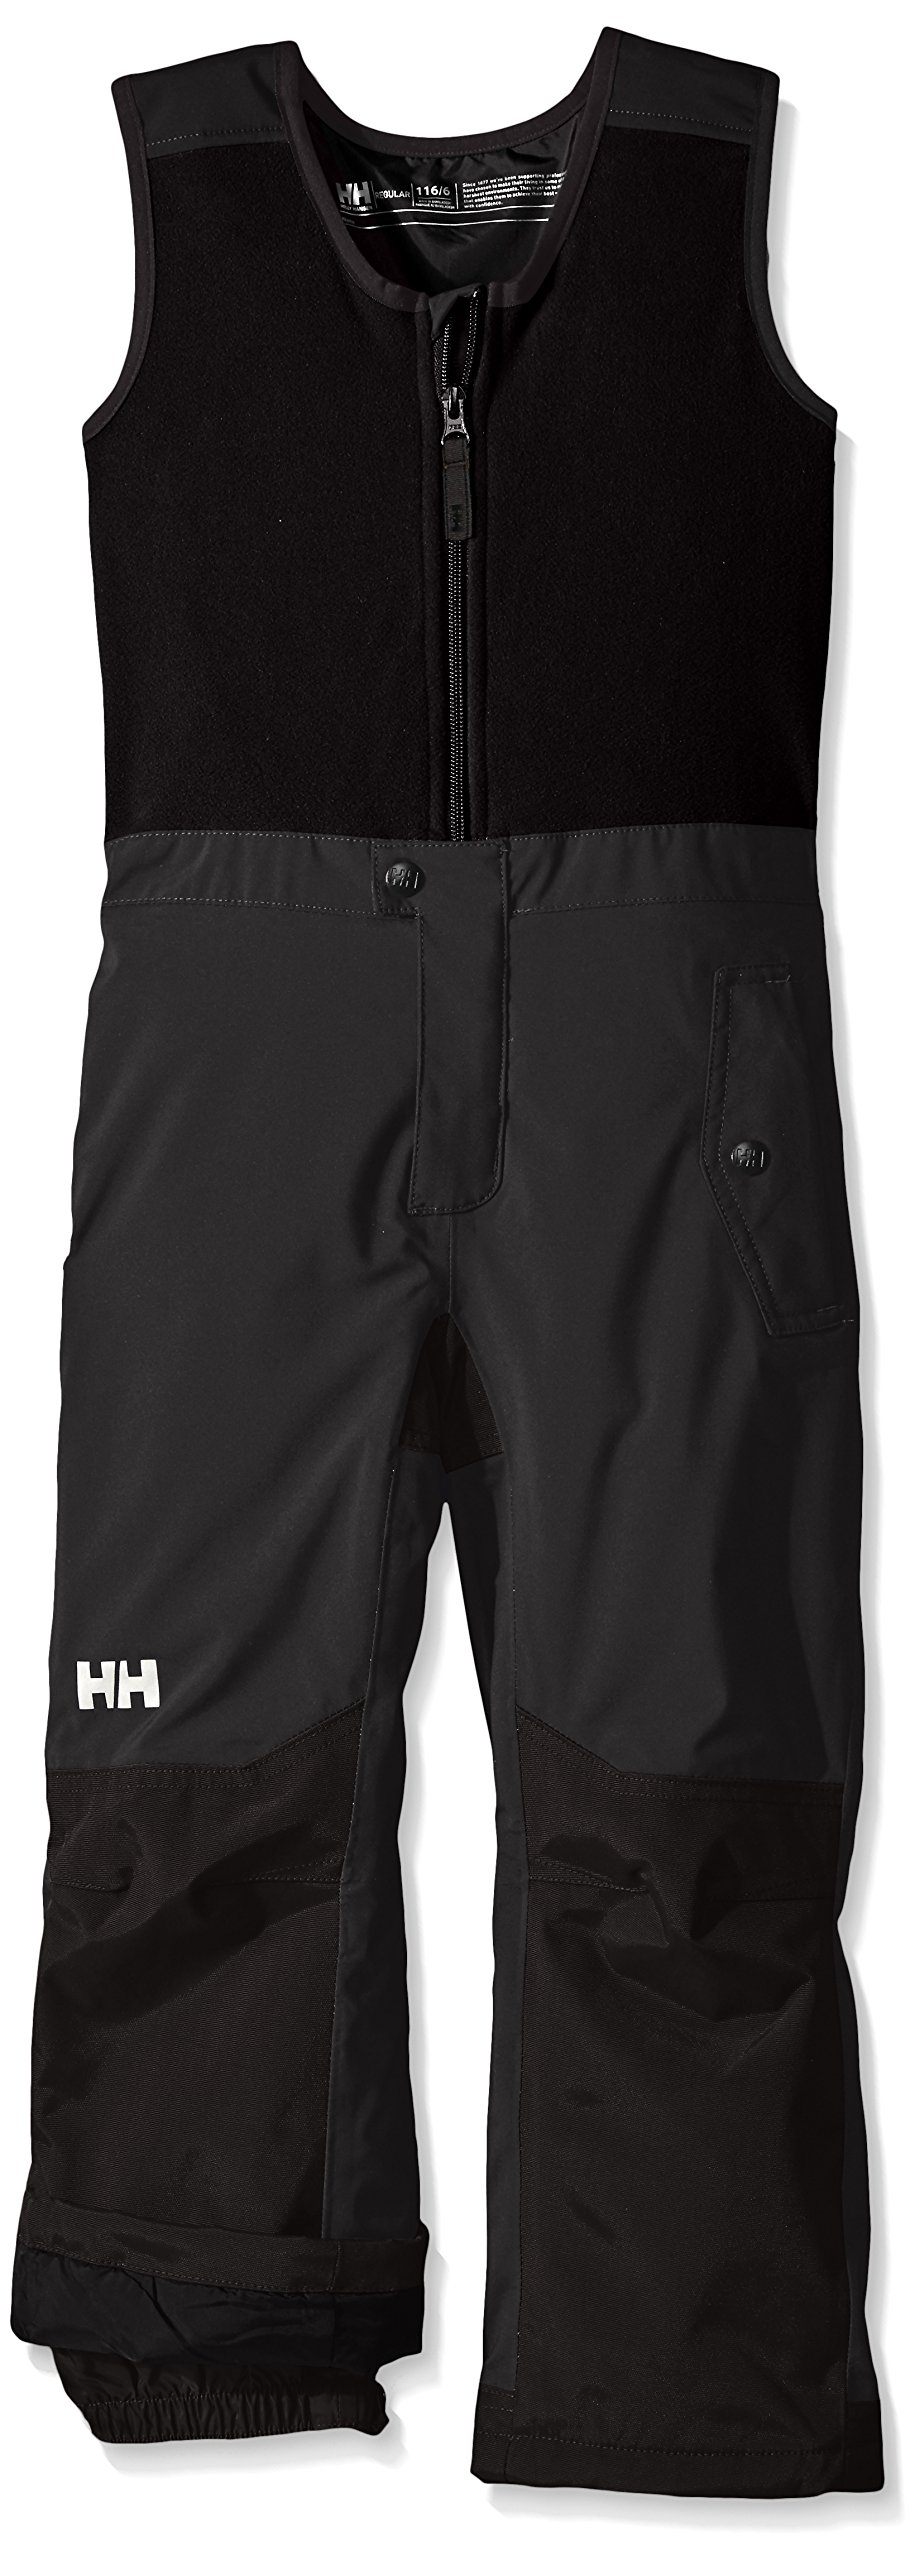 Helly Hansen Kids Powder Bib Pants, Ebony, Size 8 by Helly Hansen (Image #3)